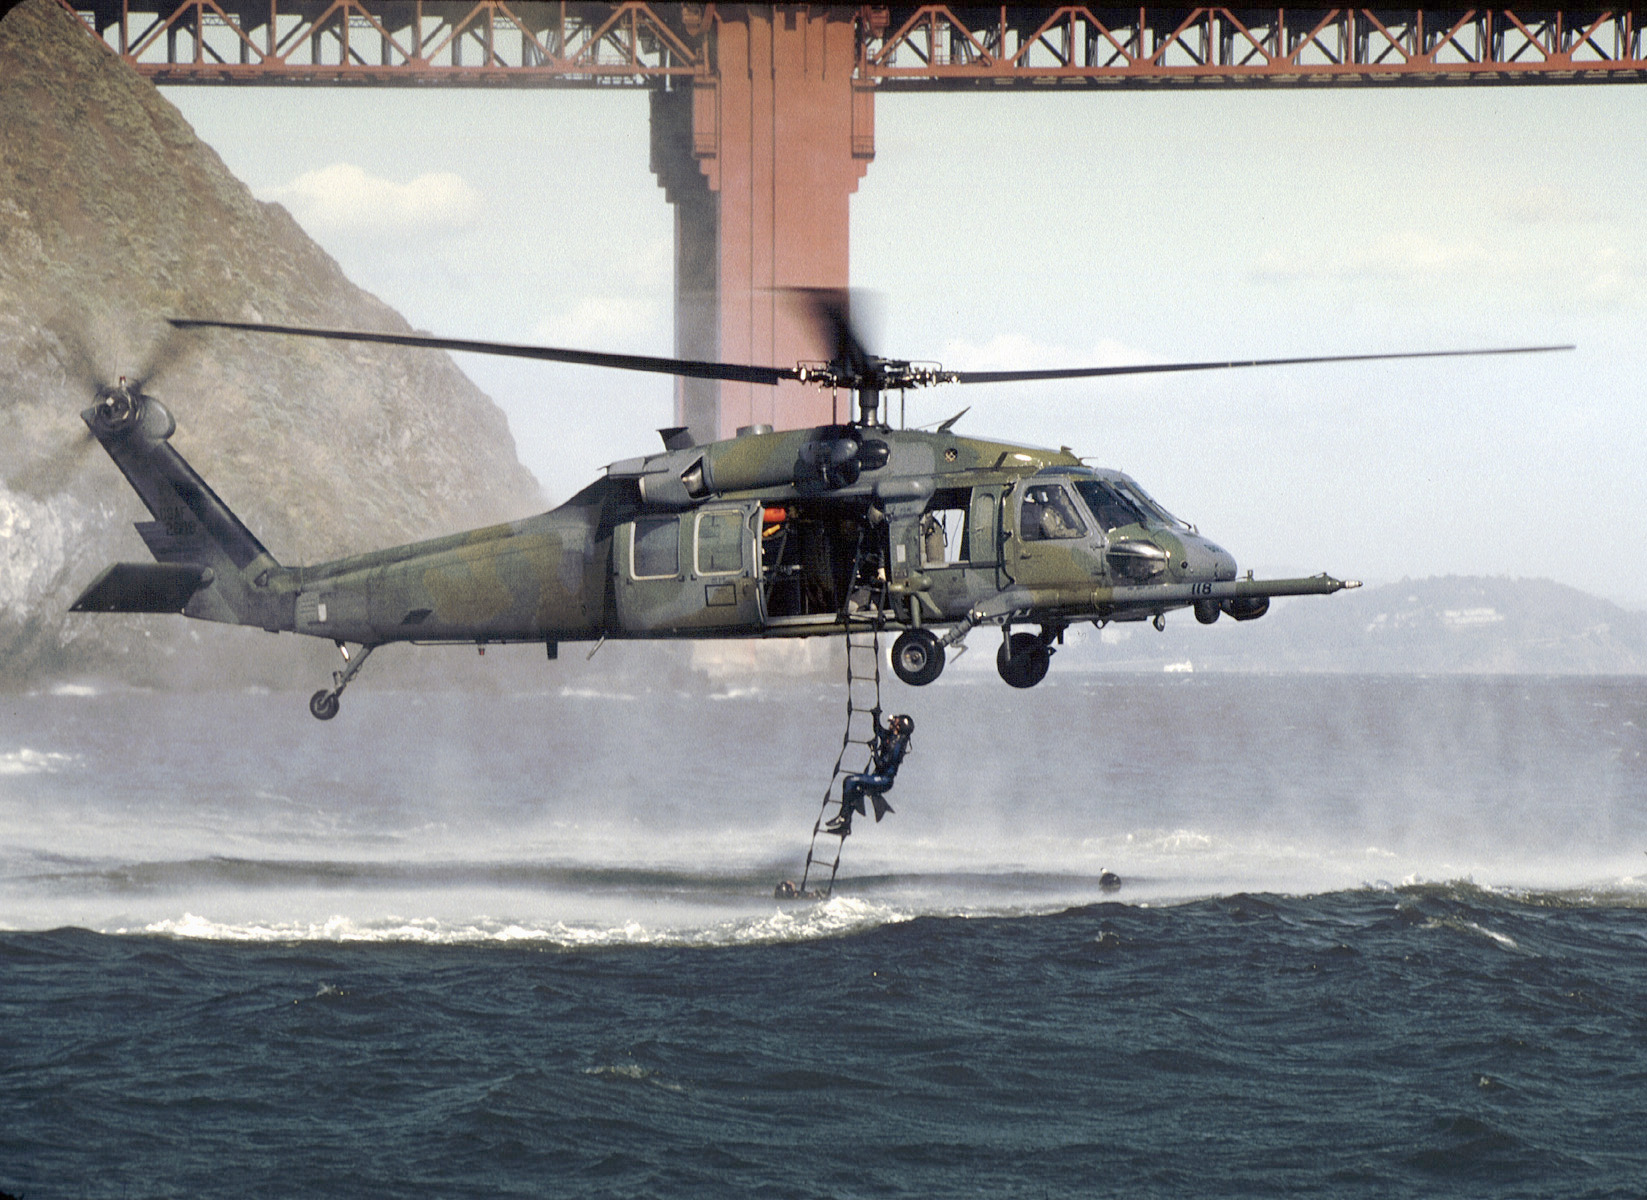 File:HH-60 129th Rescue Wing off Golden Gate 2002.jpg ...